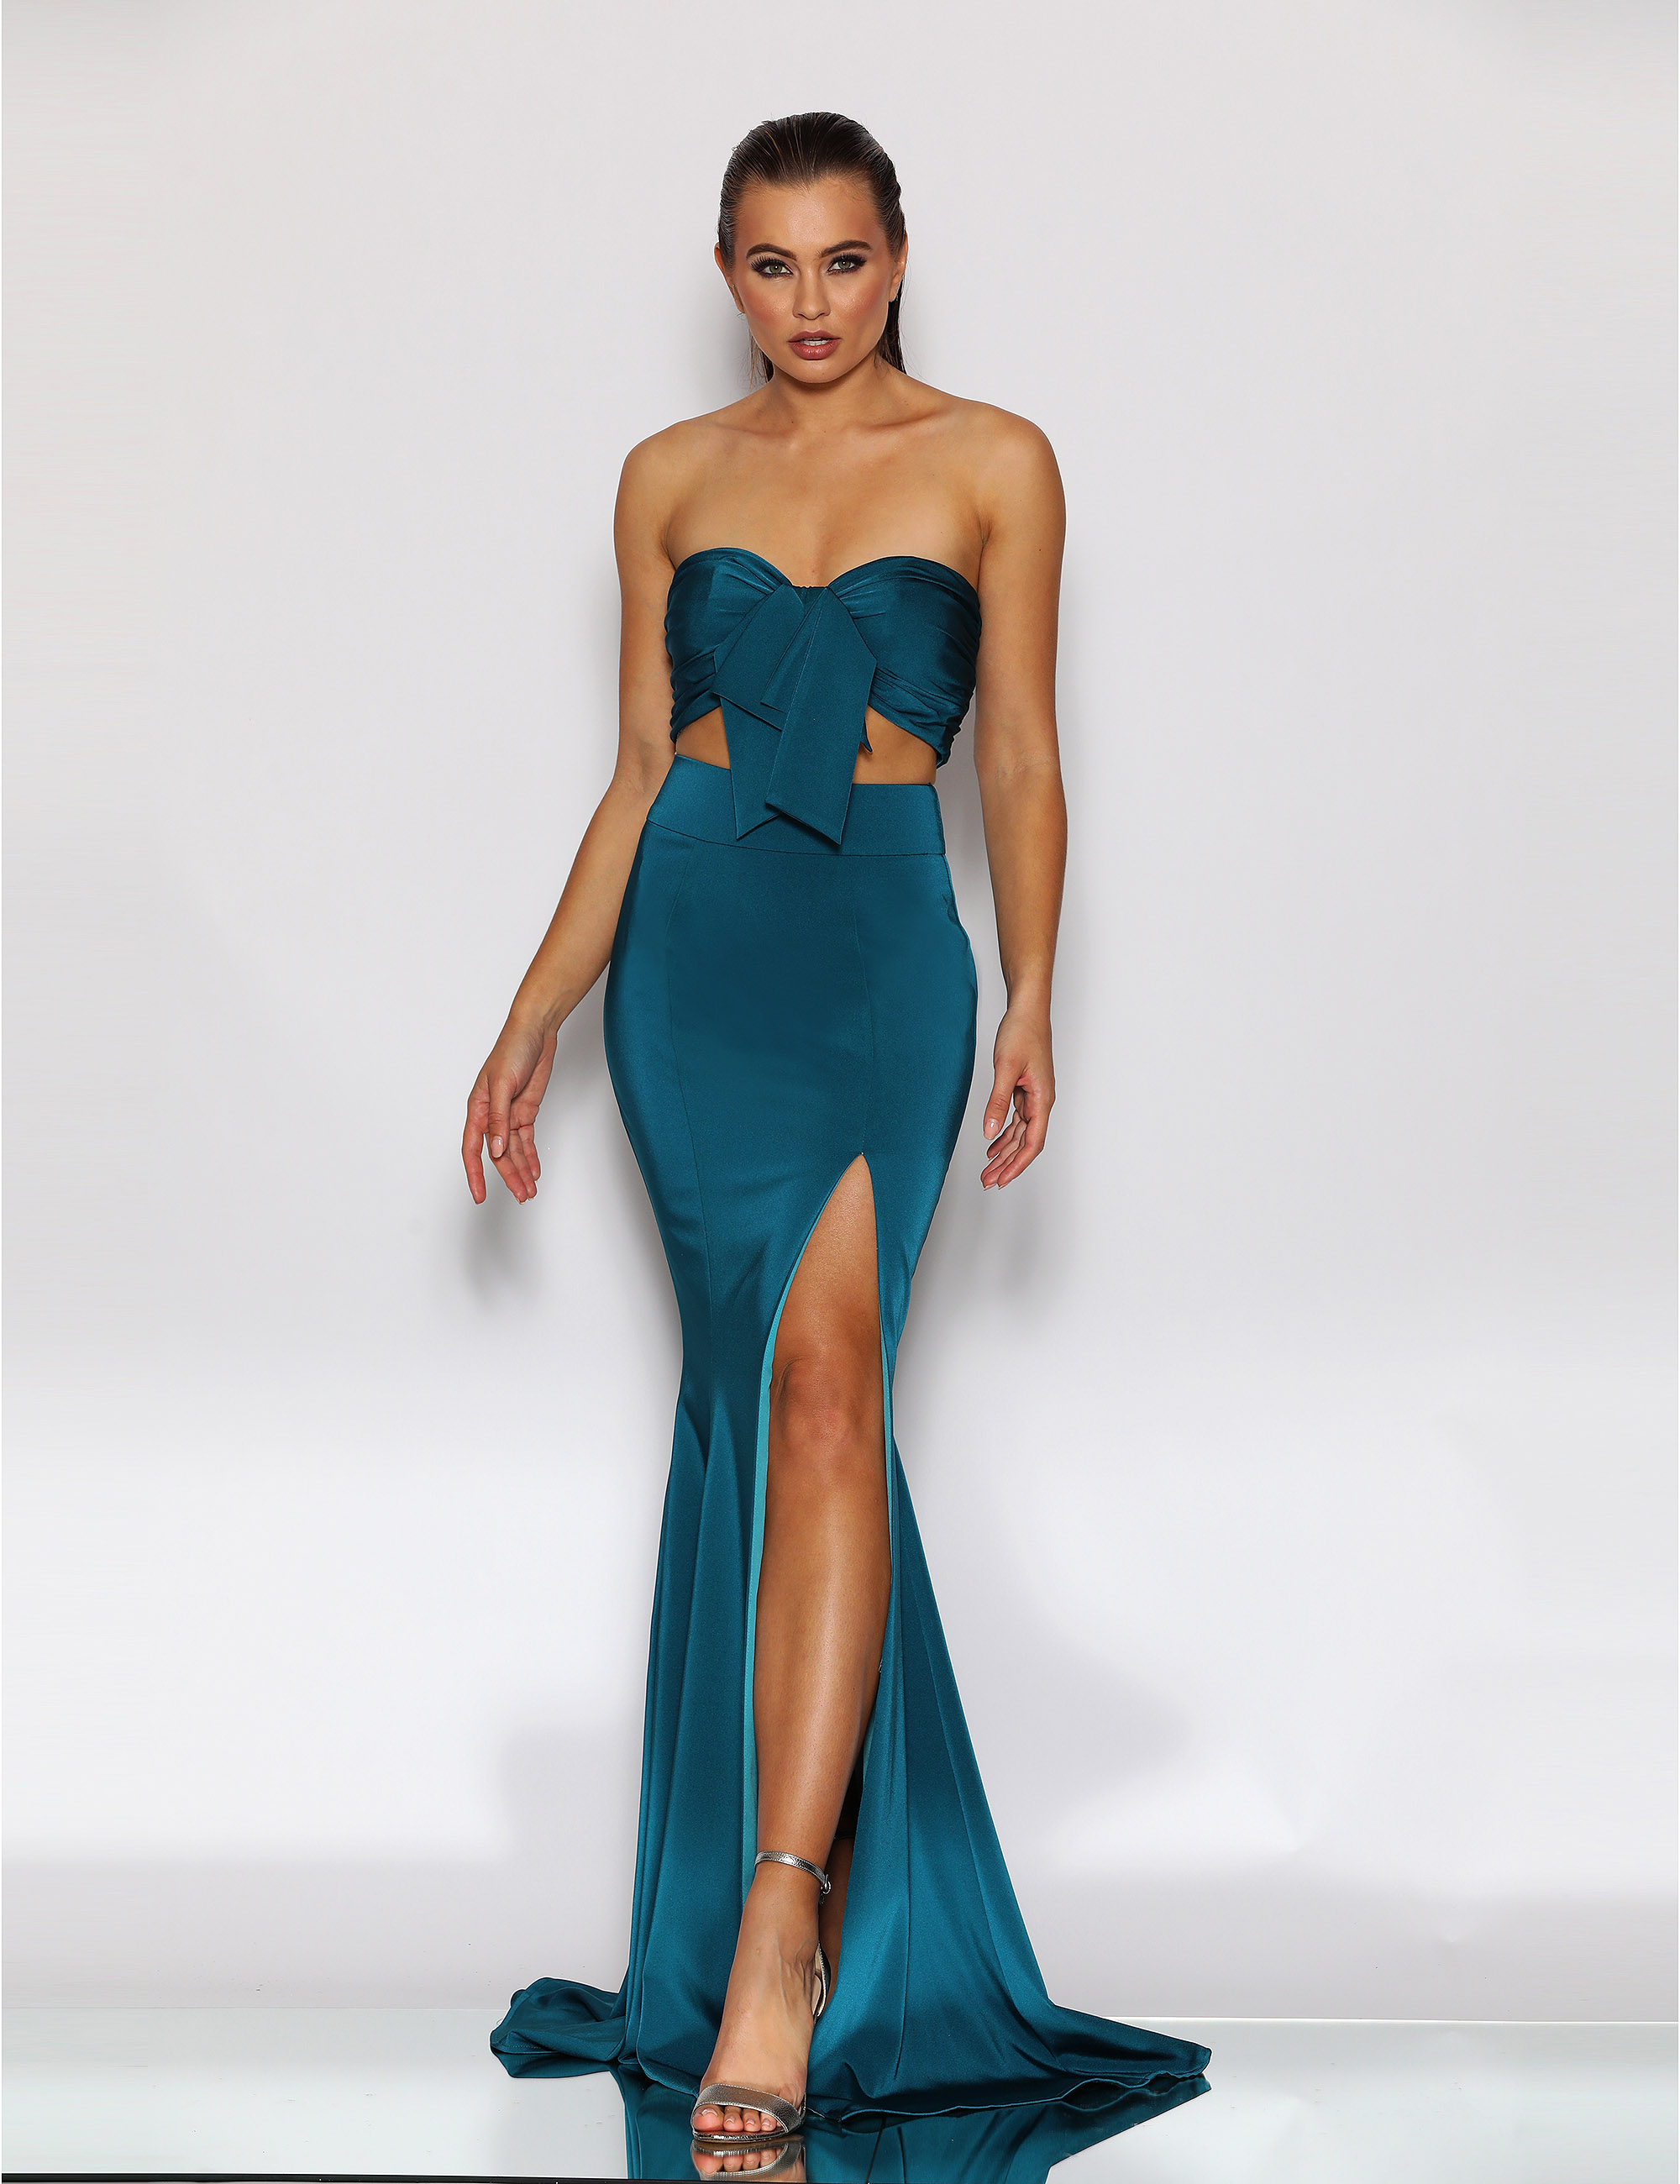 Strapless 2 piece with tie front and full length skirt with high split